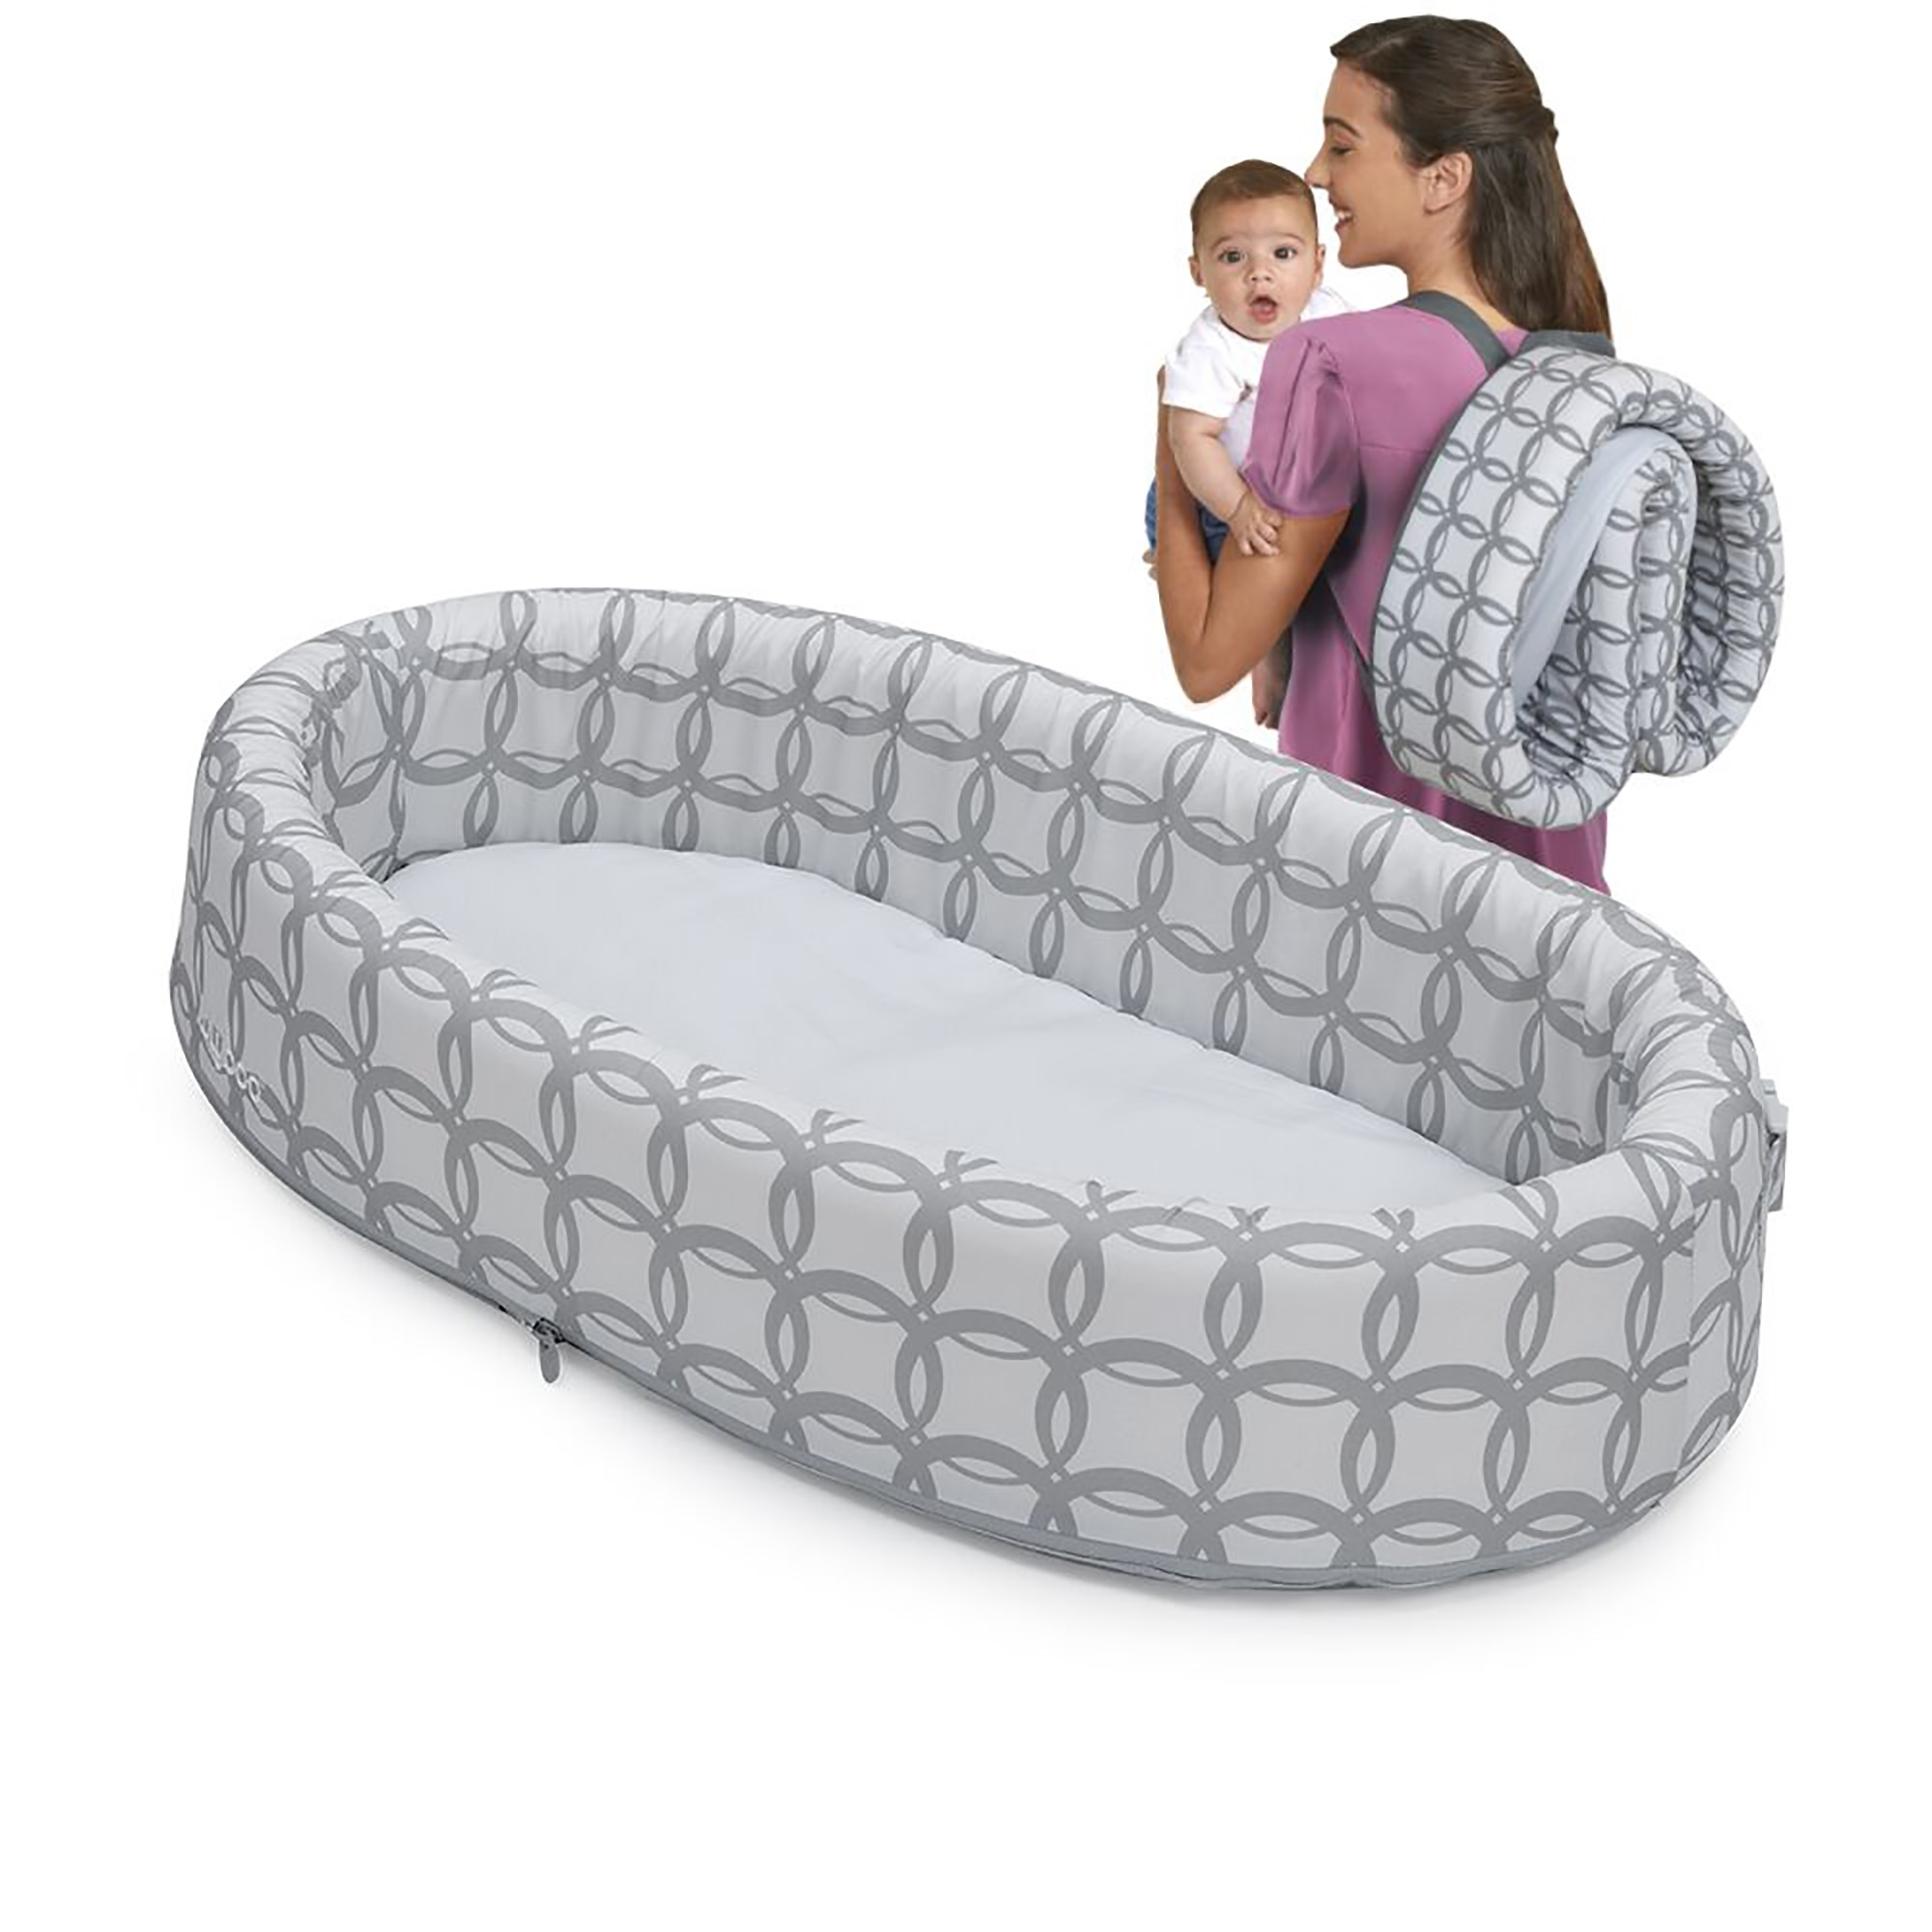 LulyBoo Classic Travel Infant Bed - Foldable Cozy Baby Bassinet - Weighs Less Than 2 Lbs